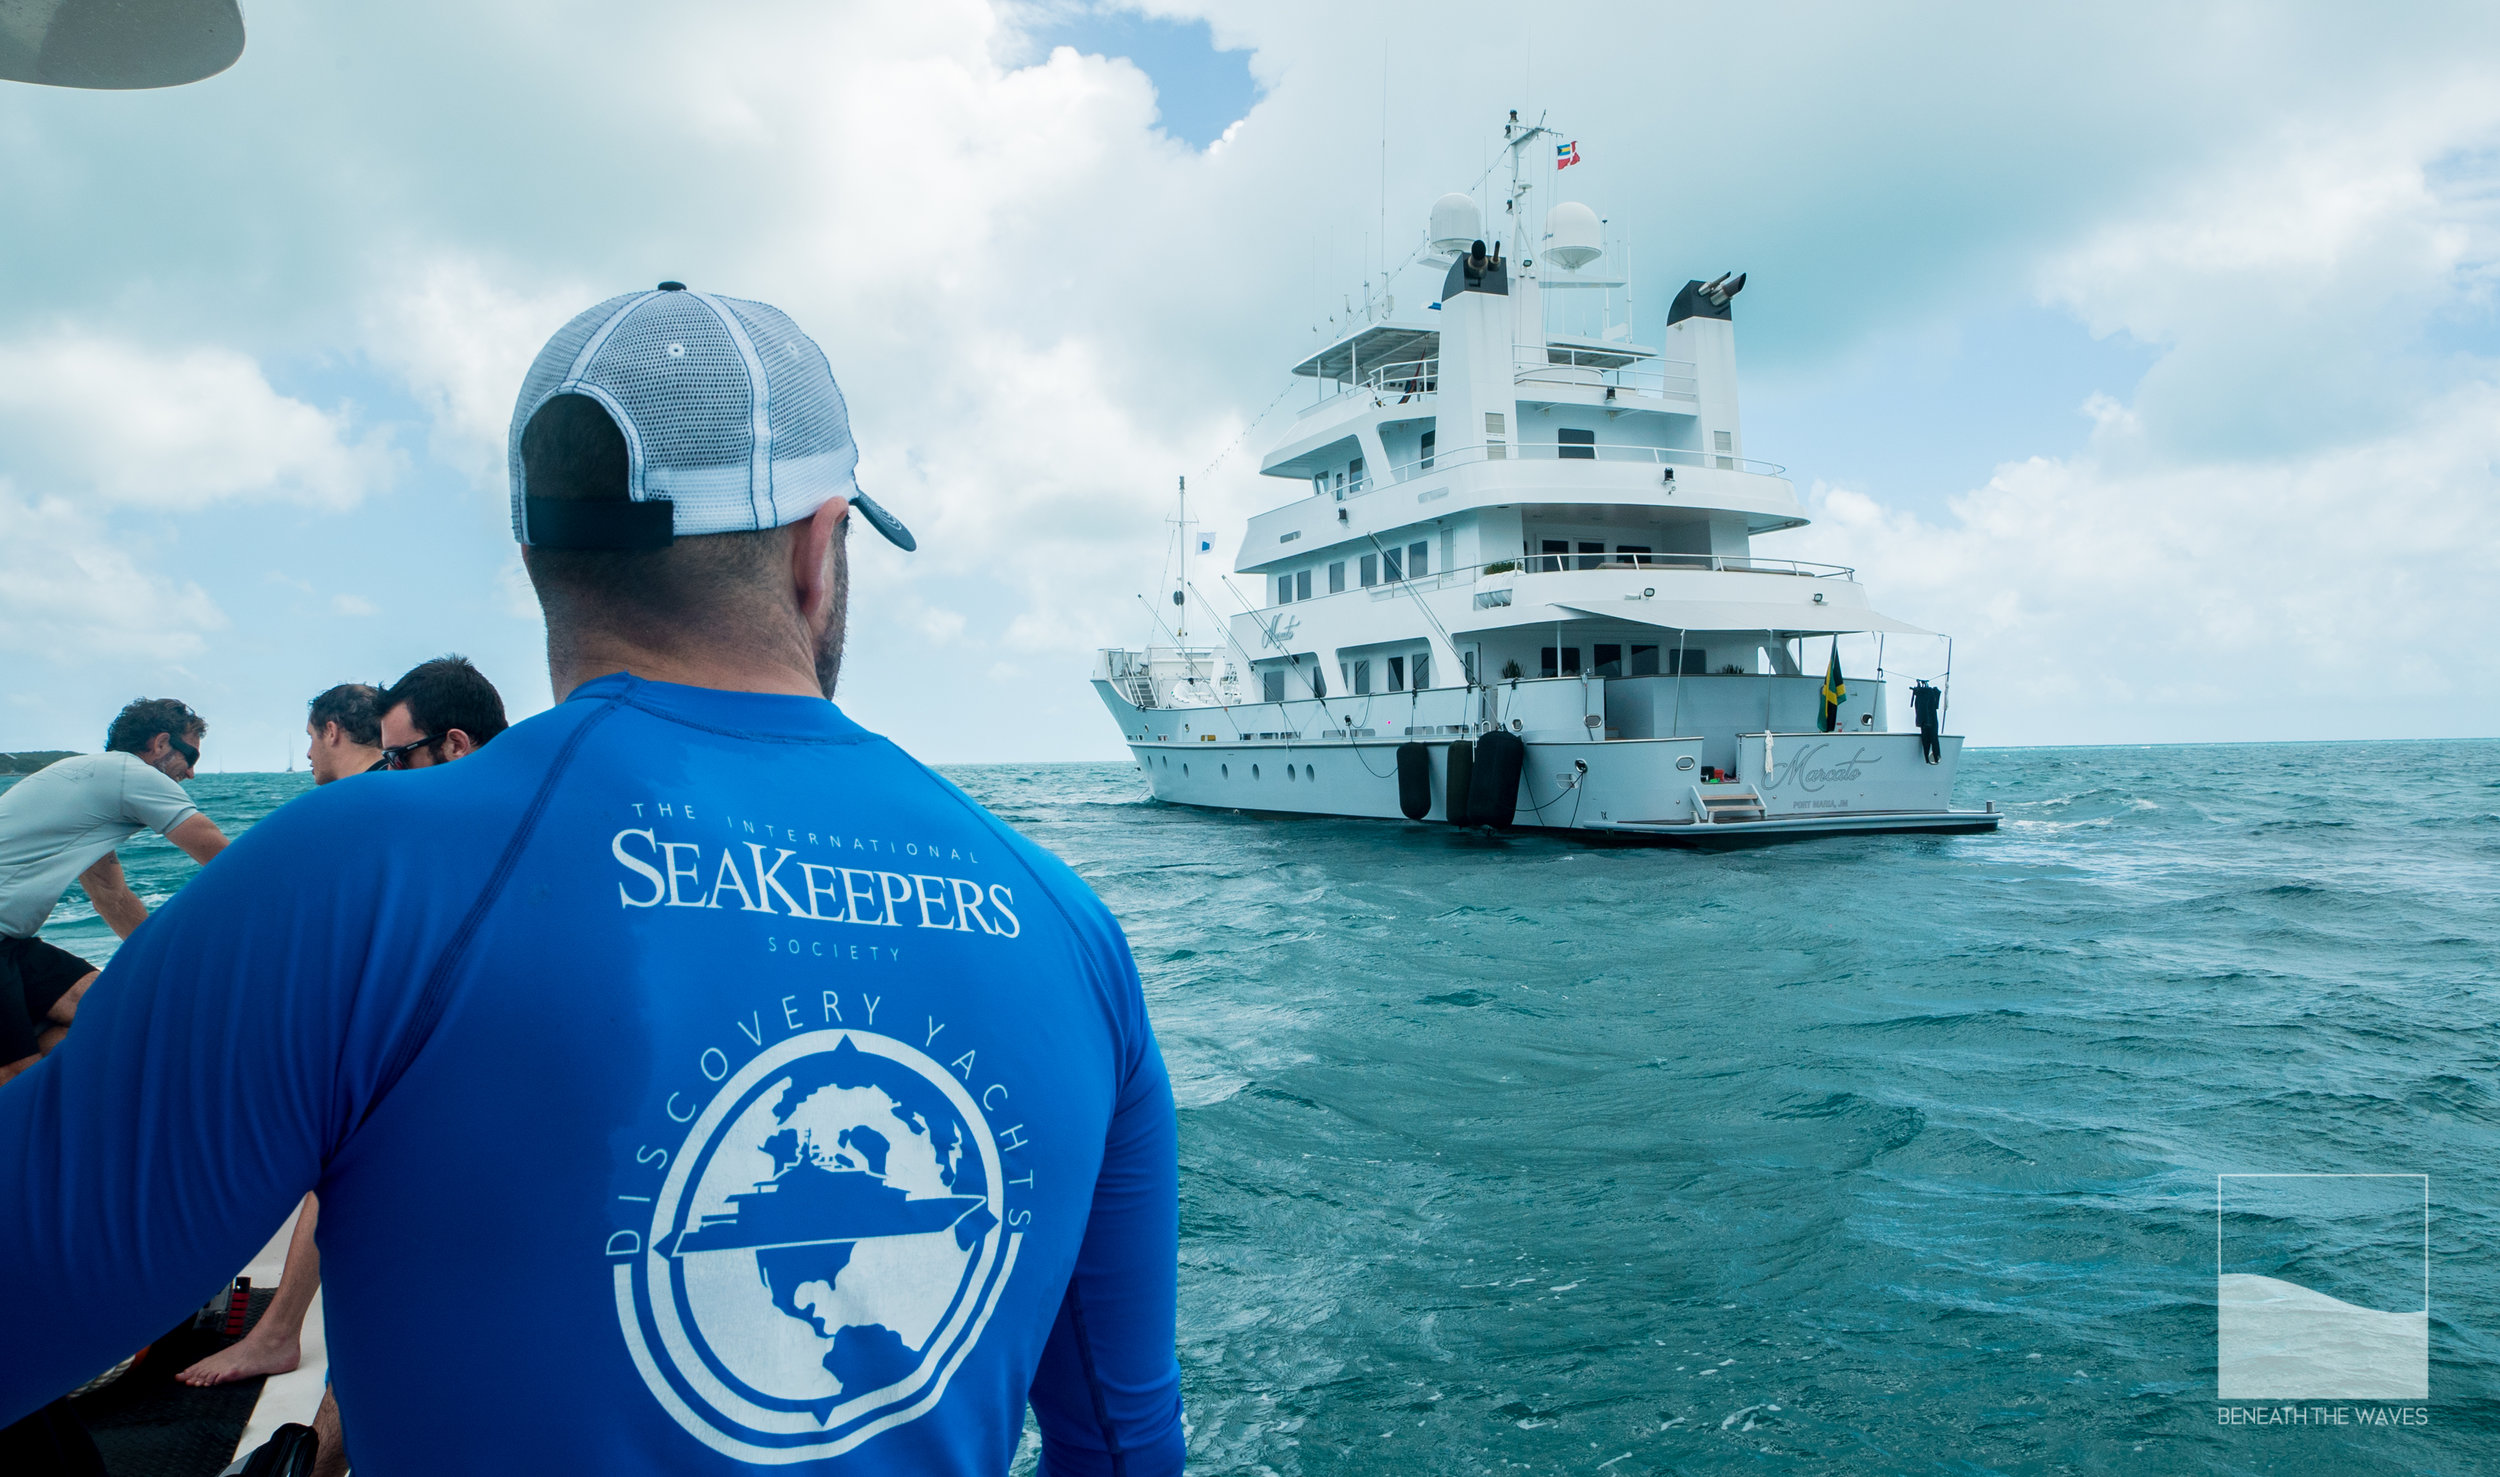 Massive thanks to the SeaKeepers for helping support good science